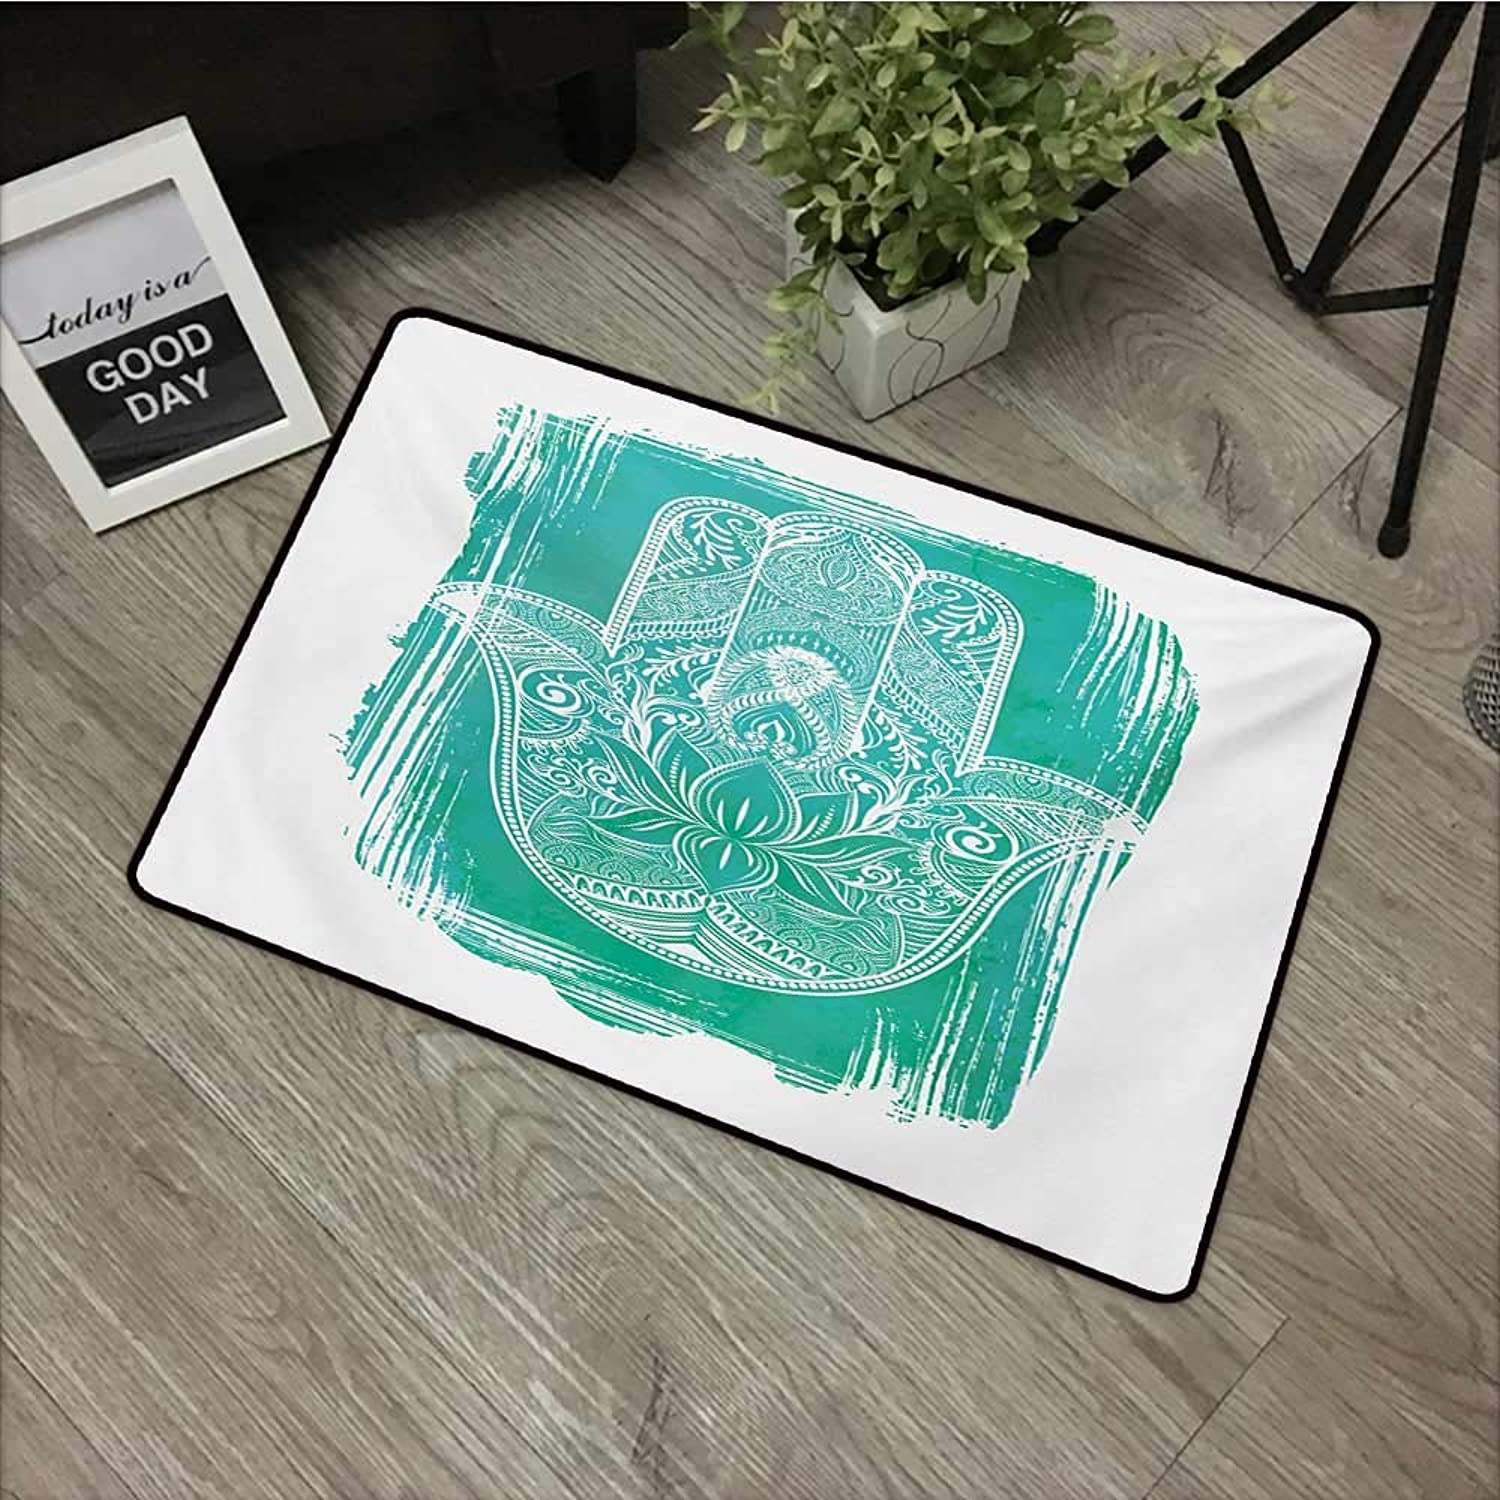 Interior mat W35 x L59 INCH Hamsa,Grungy Display with Fatima Hand Flourishing Lotus Meditation Zen Ethnic Culture,Turquoise White Natural dye printing to predect your baby's skin Non-slip Door Mat Car